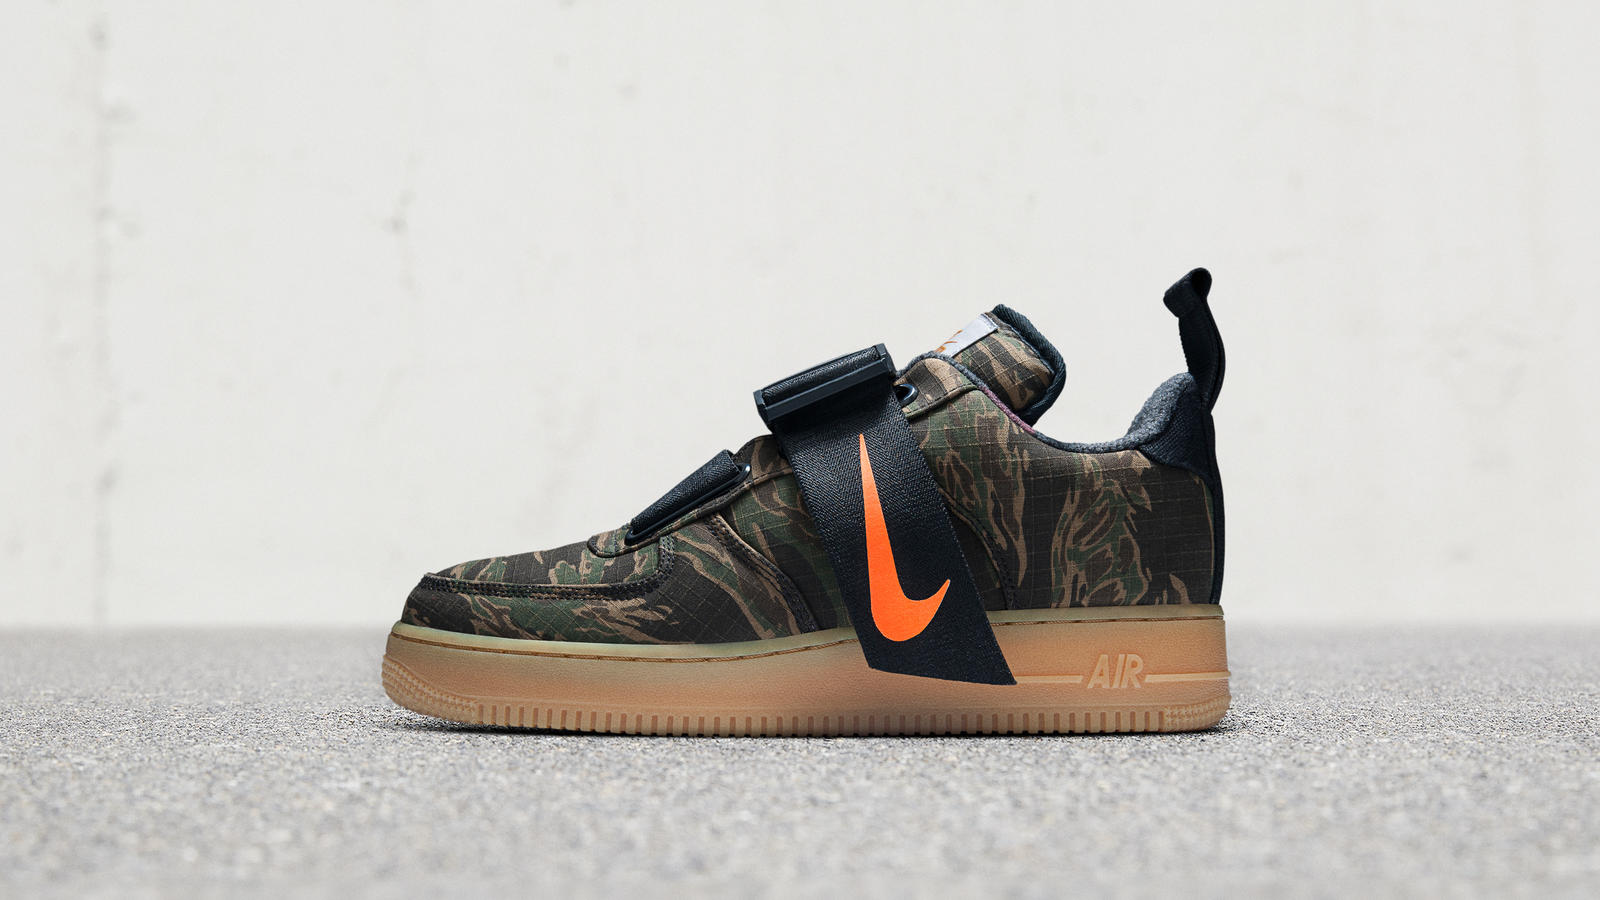 01_FeaturedFootwear_NSW_NikexCarhartt_10.12.18-686_hd_1600